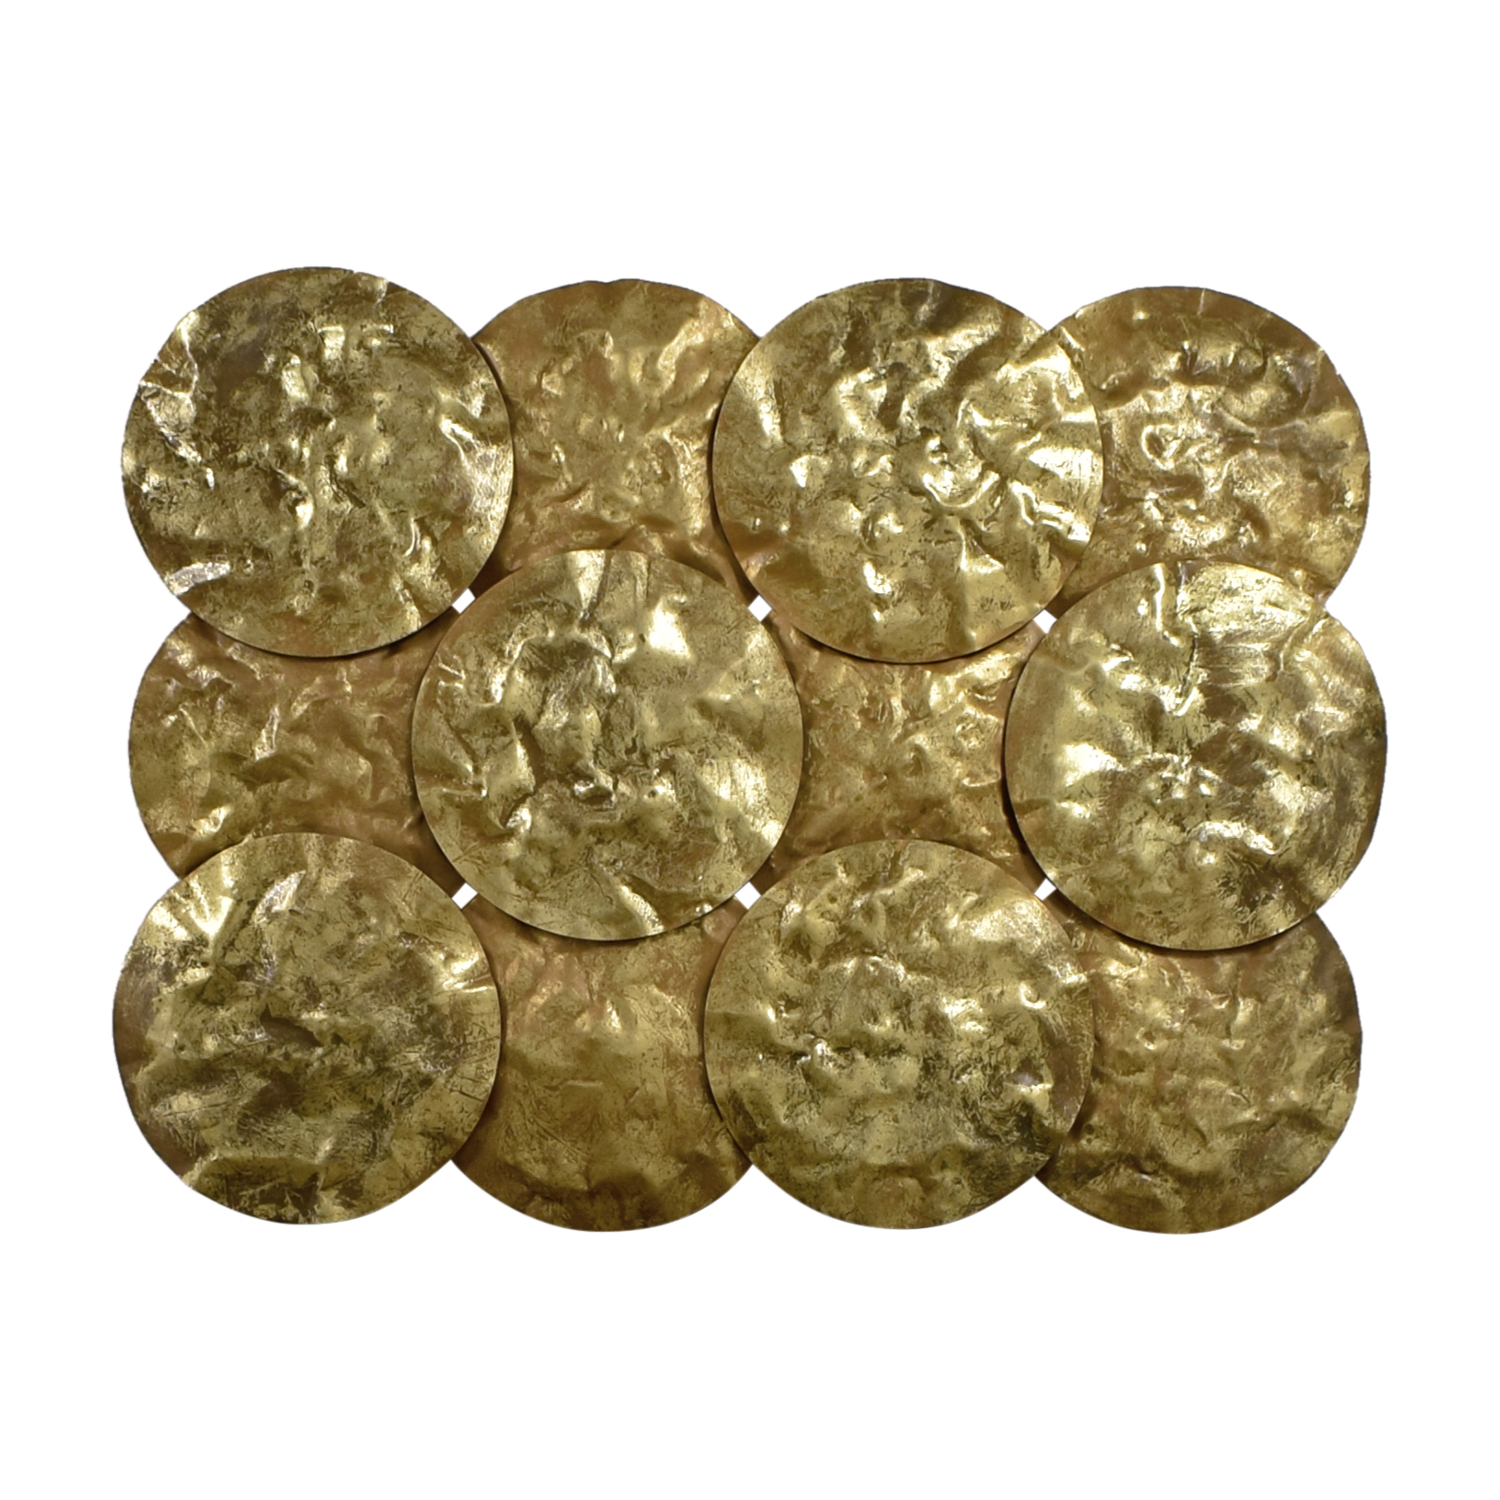 Gold Disks Wall Collage / Decorative Accents